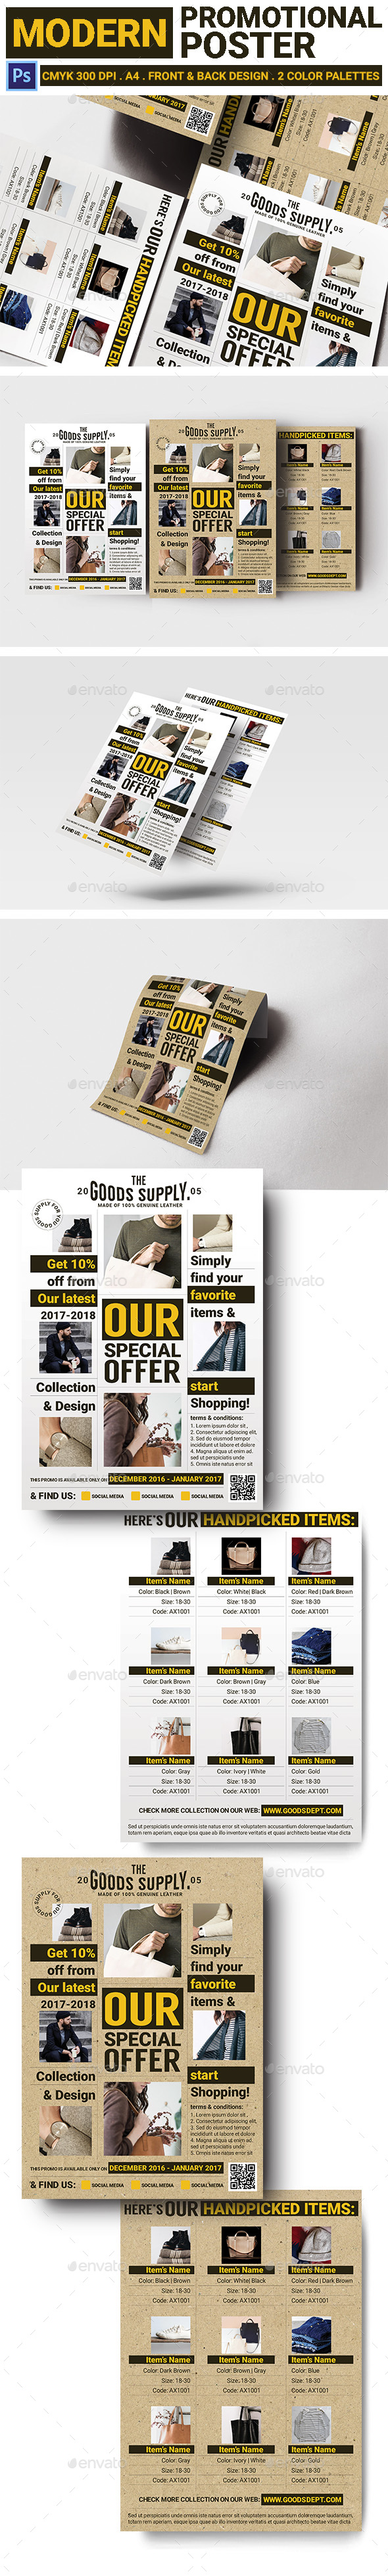 Modern Promotional Poster - Corporate Flyers